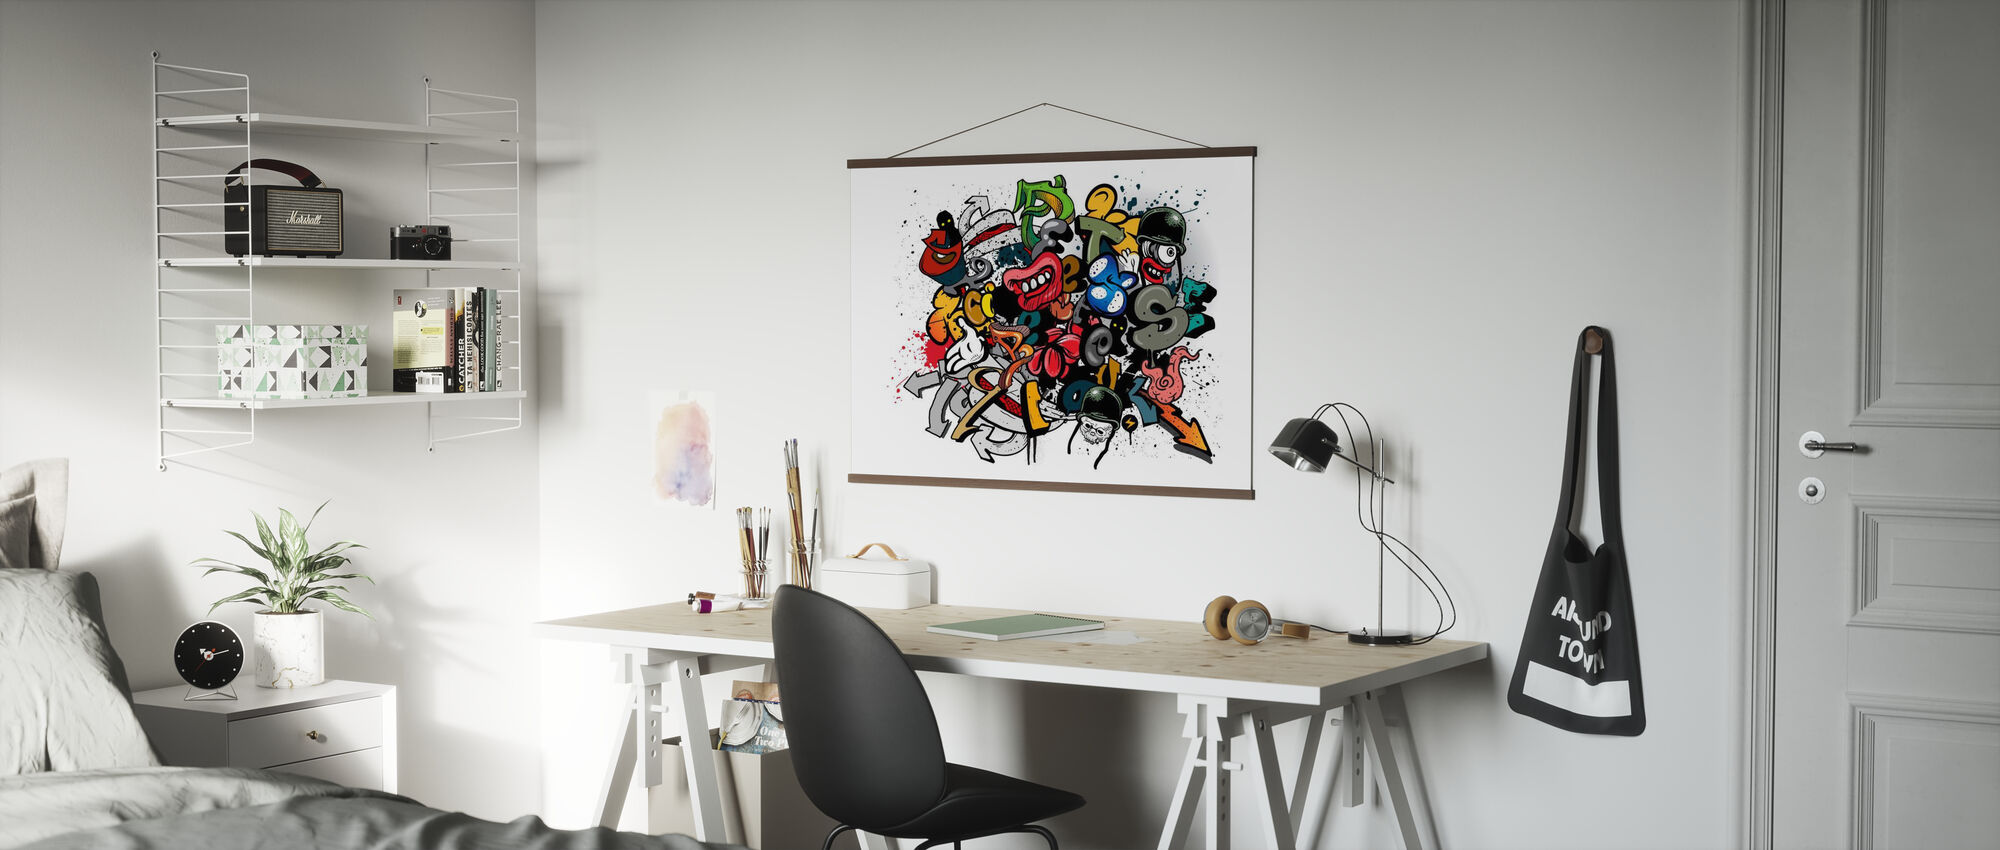 Graffiti Elements - Poster - Office